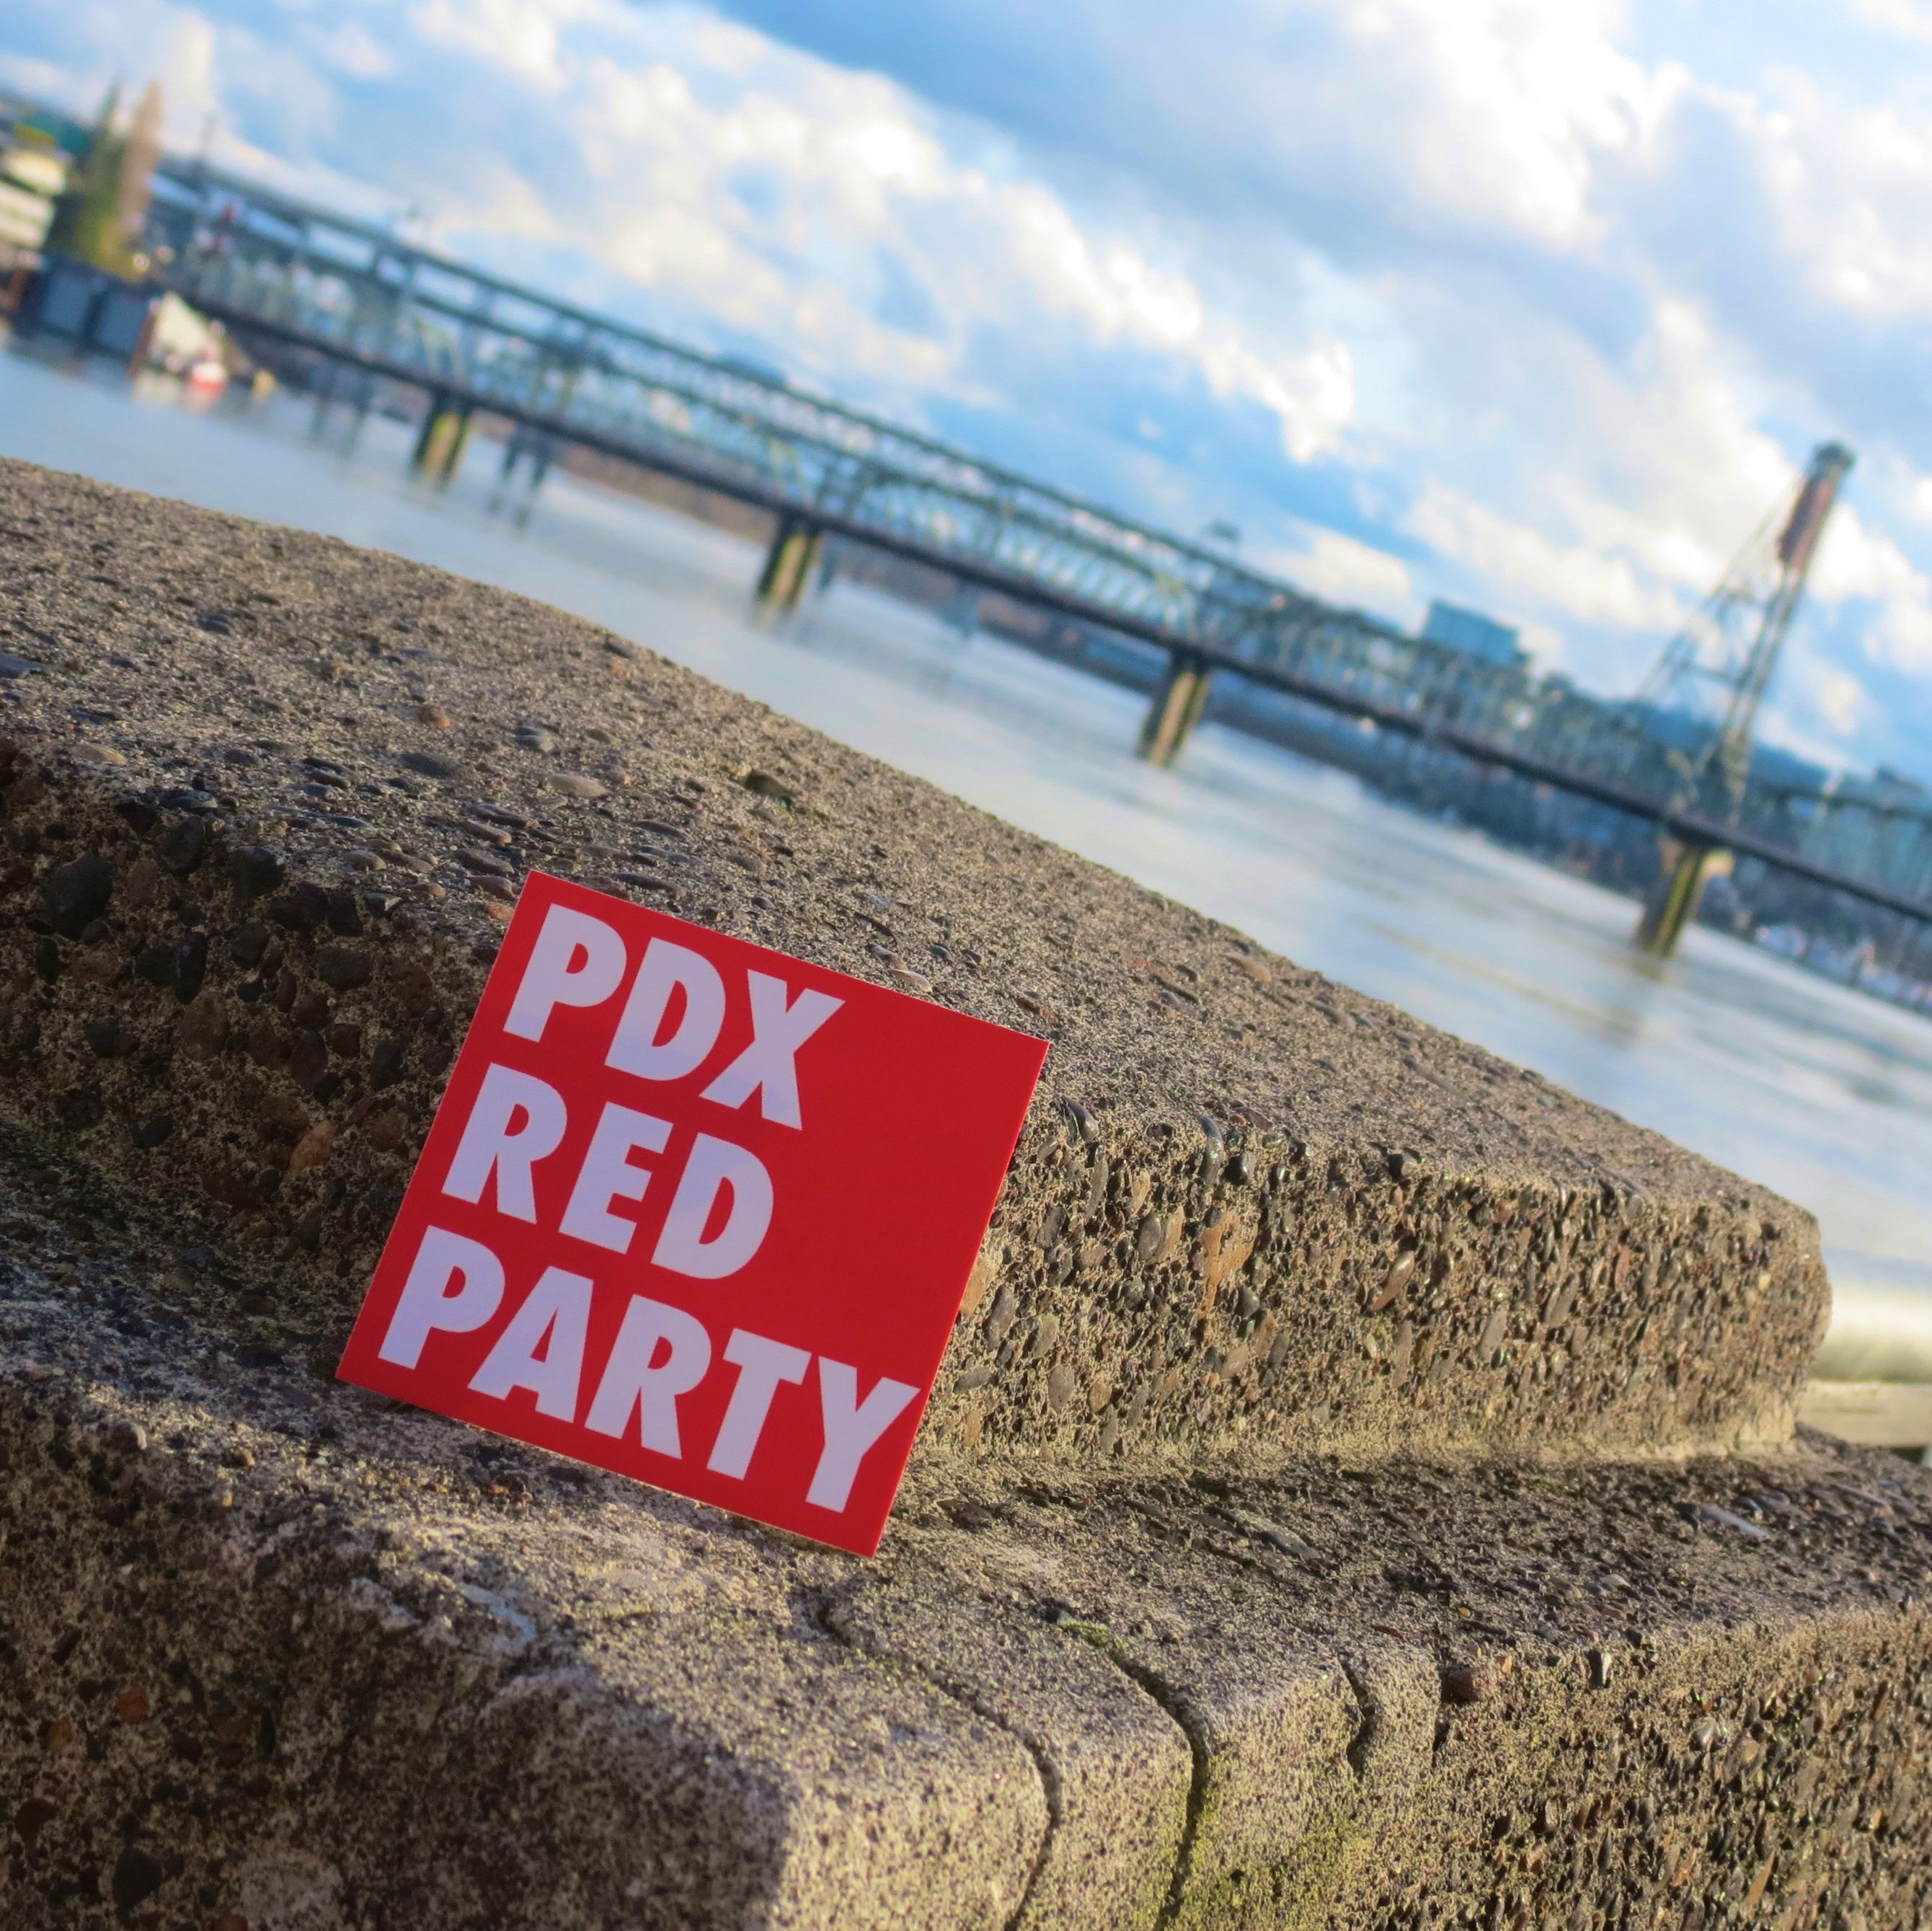 Pdx red party bridge city   h. mcgrath kor3su